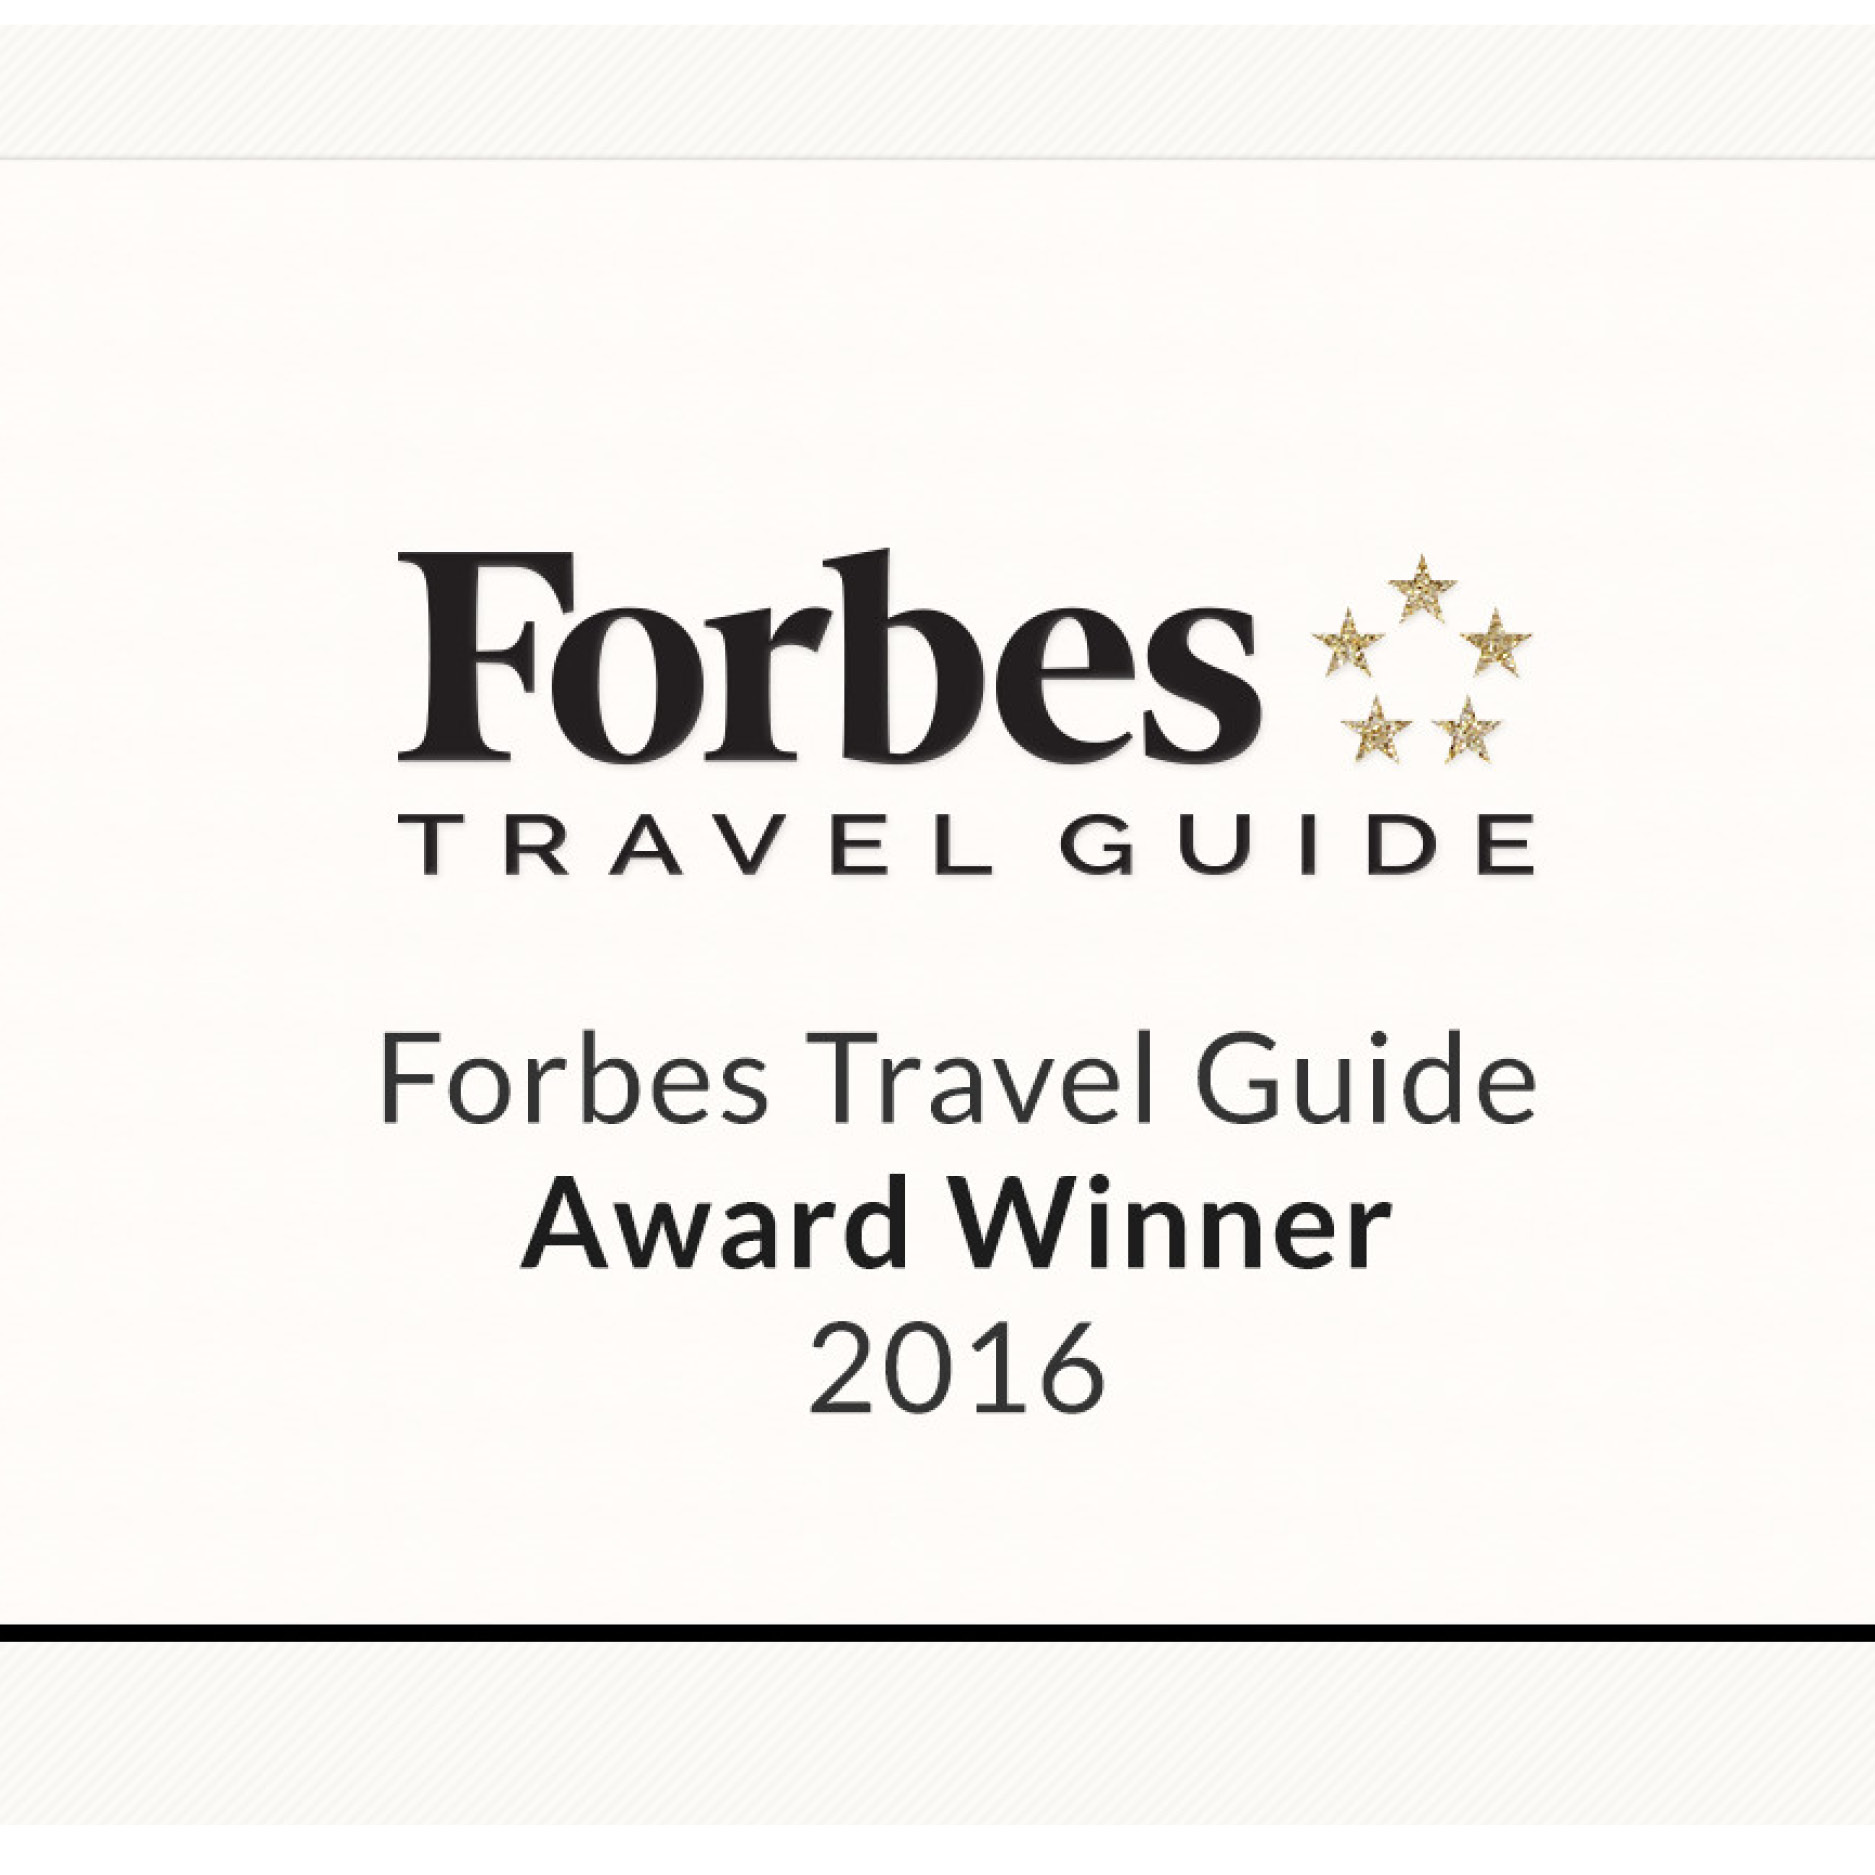 Miguel Forbes Travel Guide